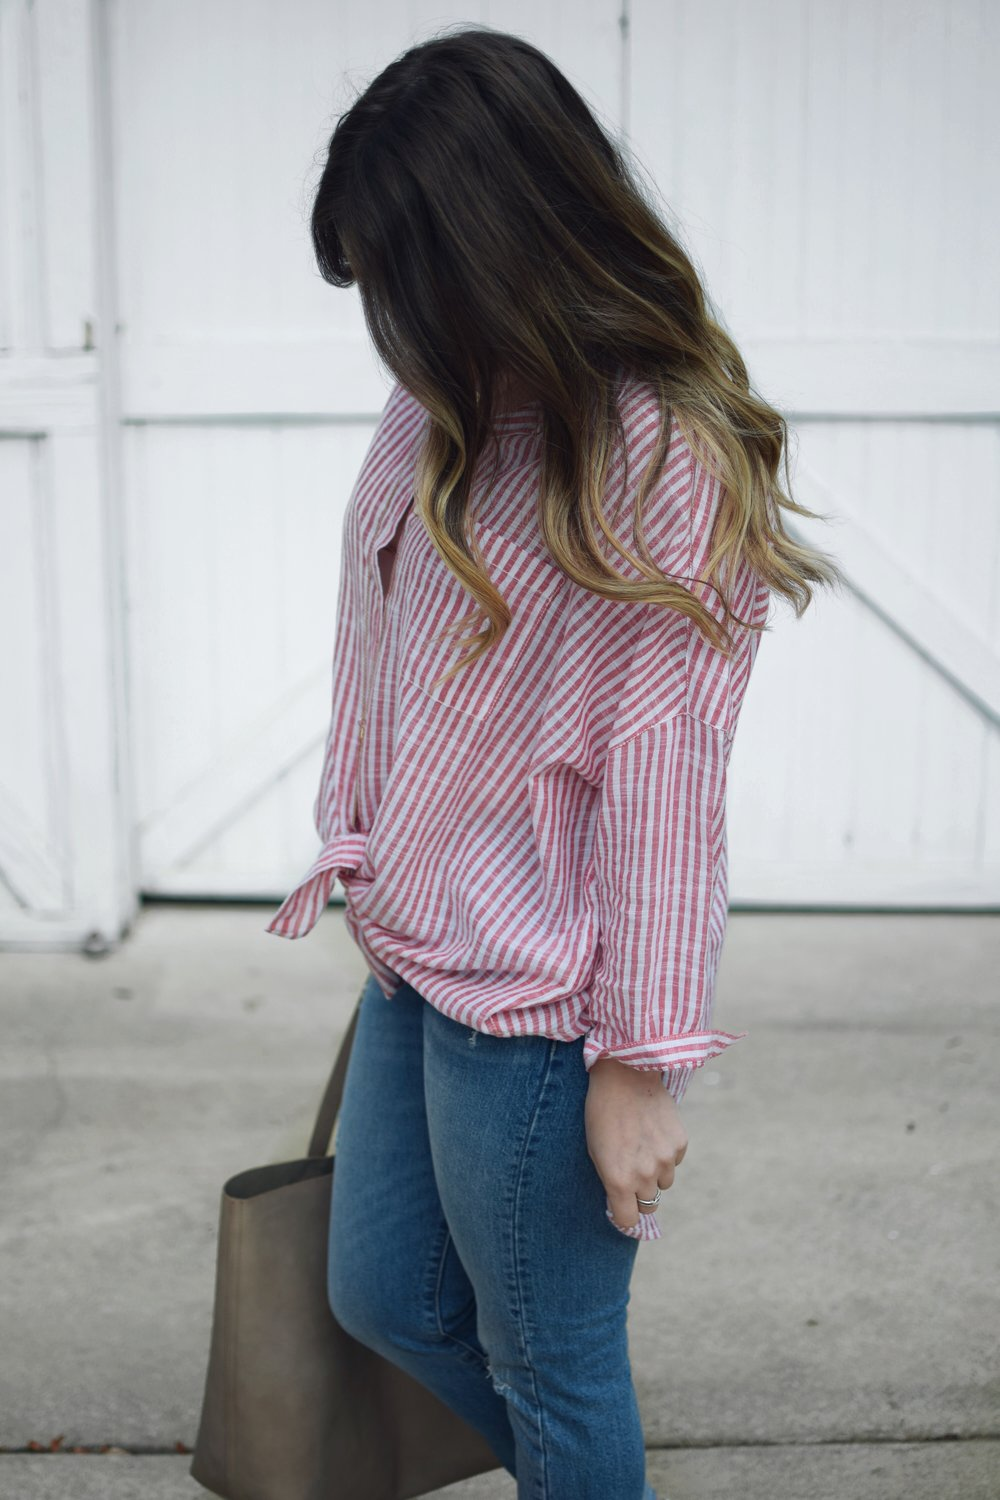 red & white striped button up / summer outfit idea